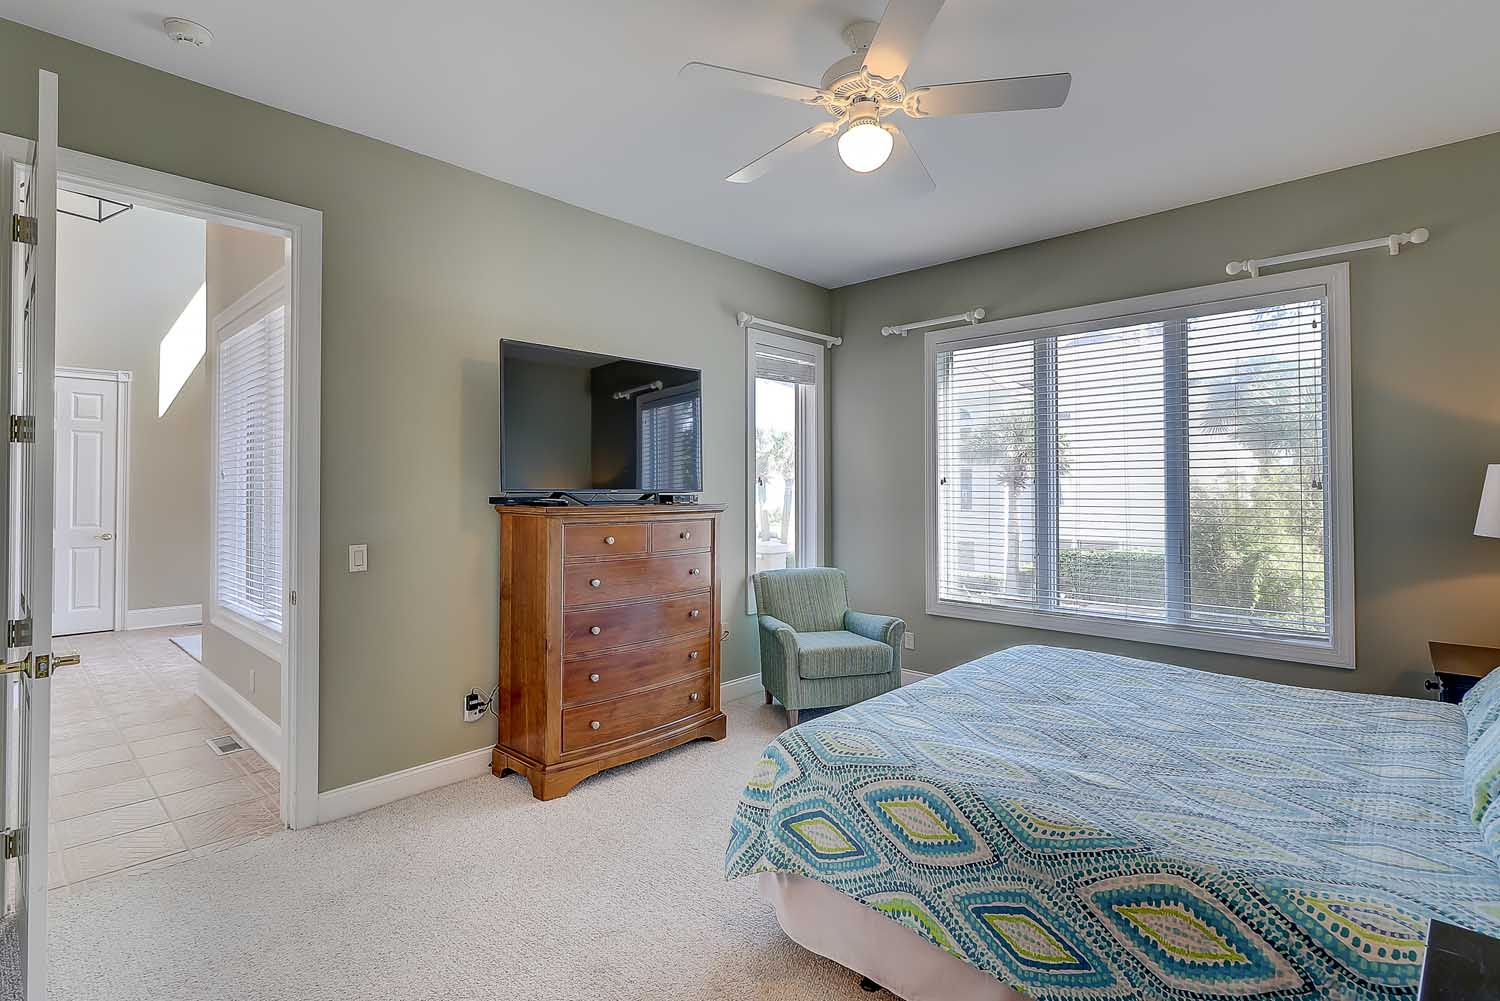 First floor king guest room has king bed, flat panel TV and en suite bathroom with dual vanities and walk in shower